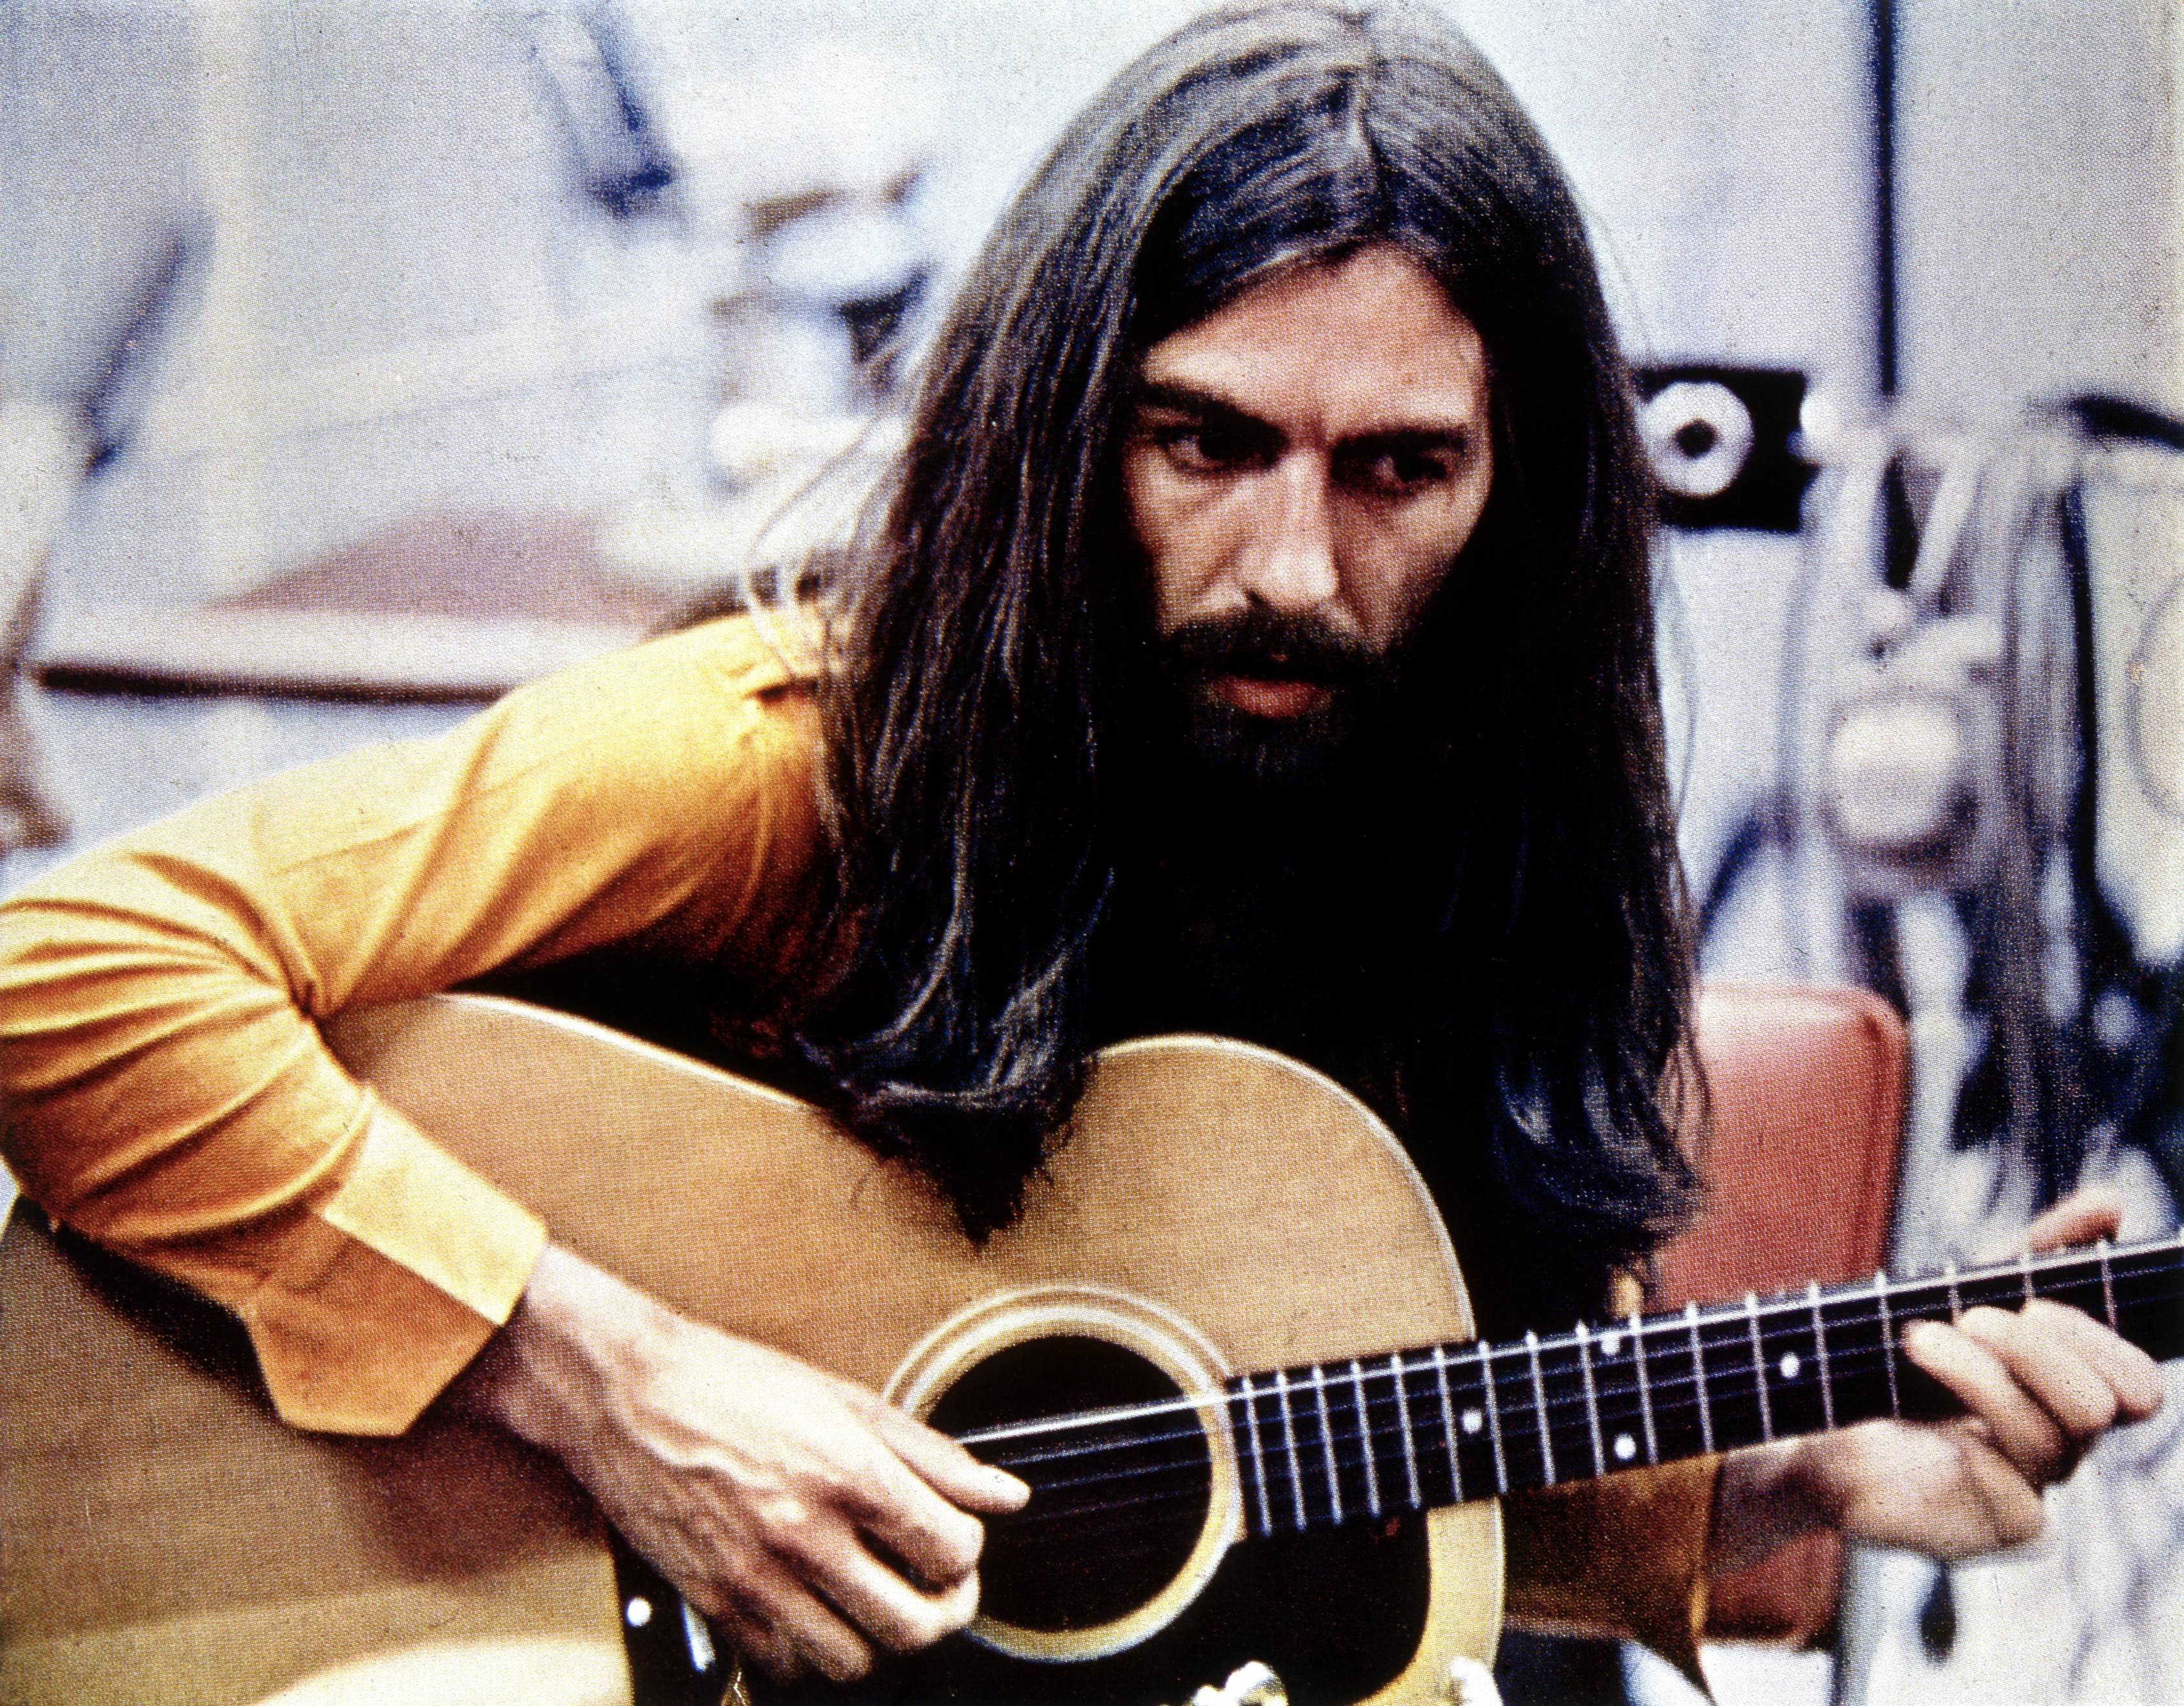 UNSPECIFIED - JANUARY 01:  (AUSTRALIA OUT) Photo of George HARRISON; playing acoustic guitar, c.1970/1971  (Photo by GAB Arch